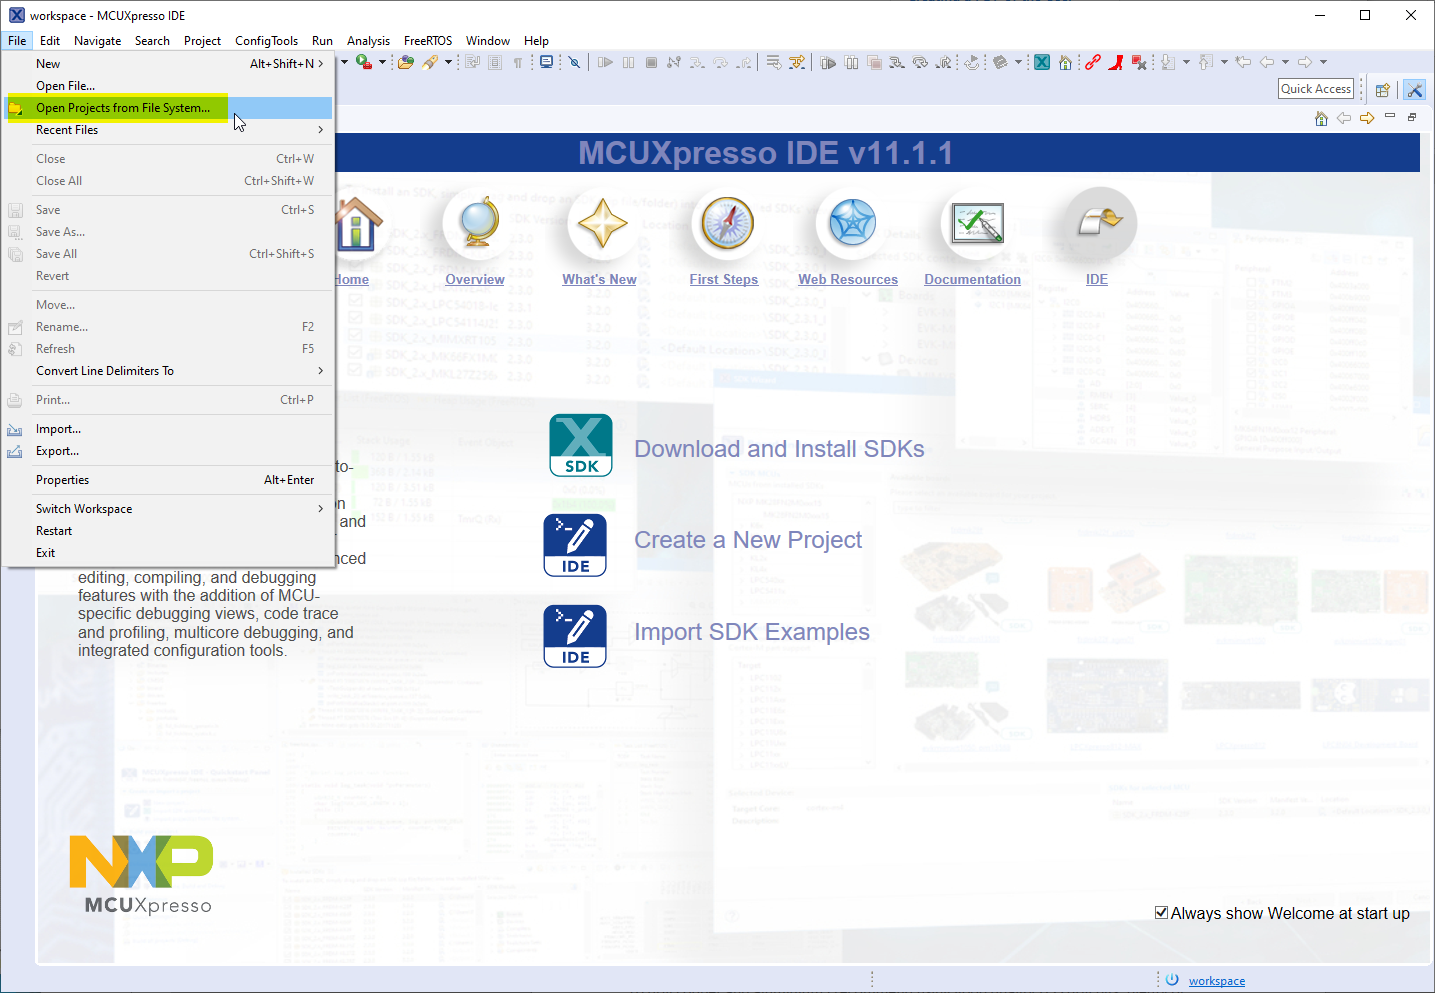 2020-05-31-17_32_47-workspace---MCUXpresso-IDE.png